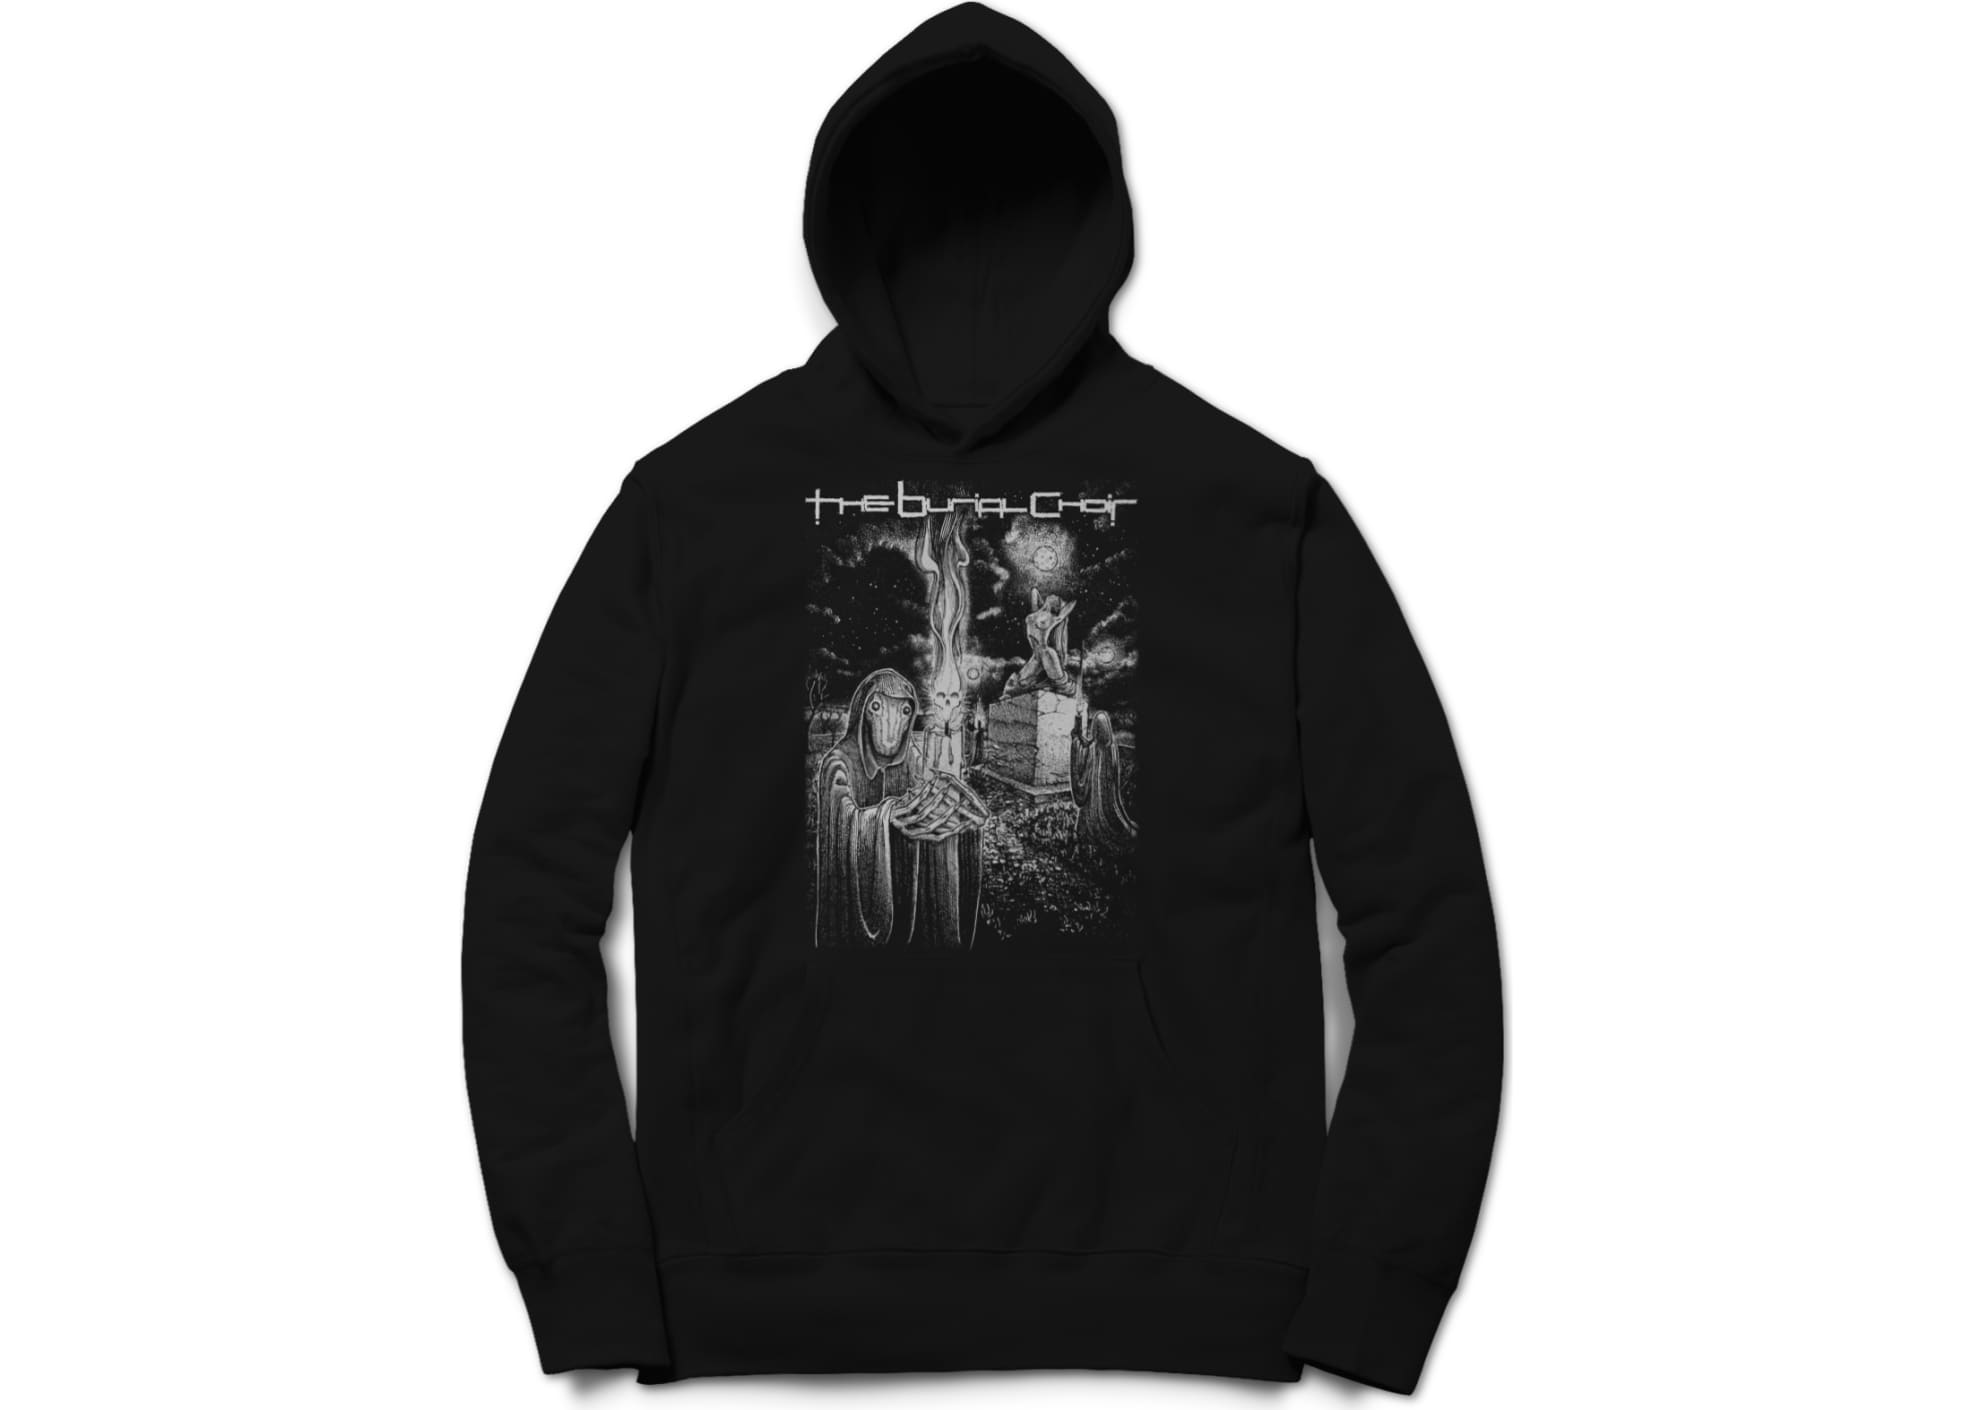 The burial choir relics hoodie 1597285469